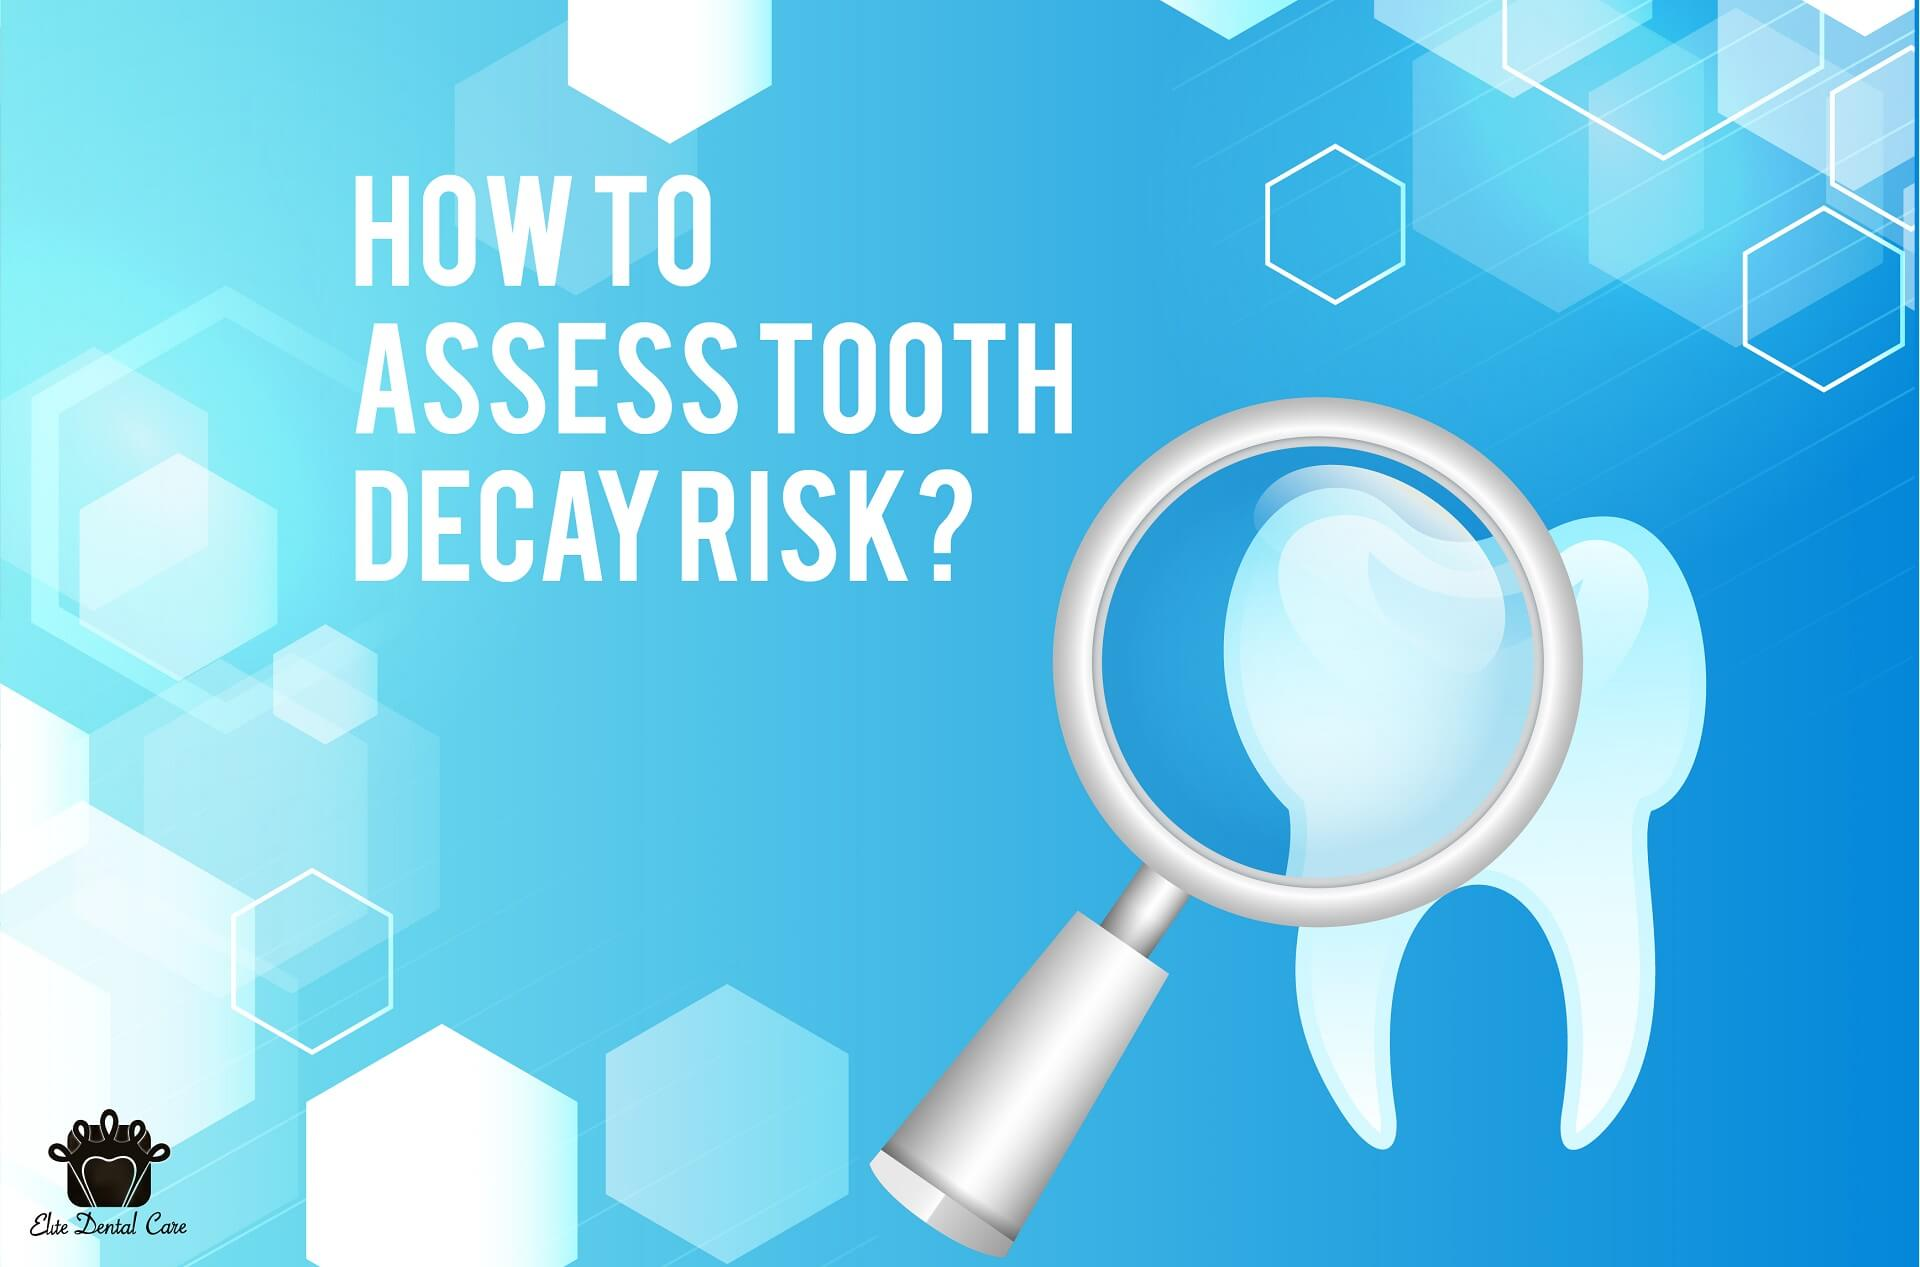 Top 5 risks assessment for tooth decay